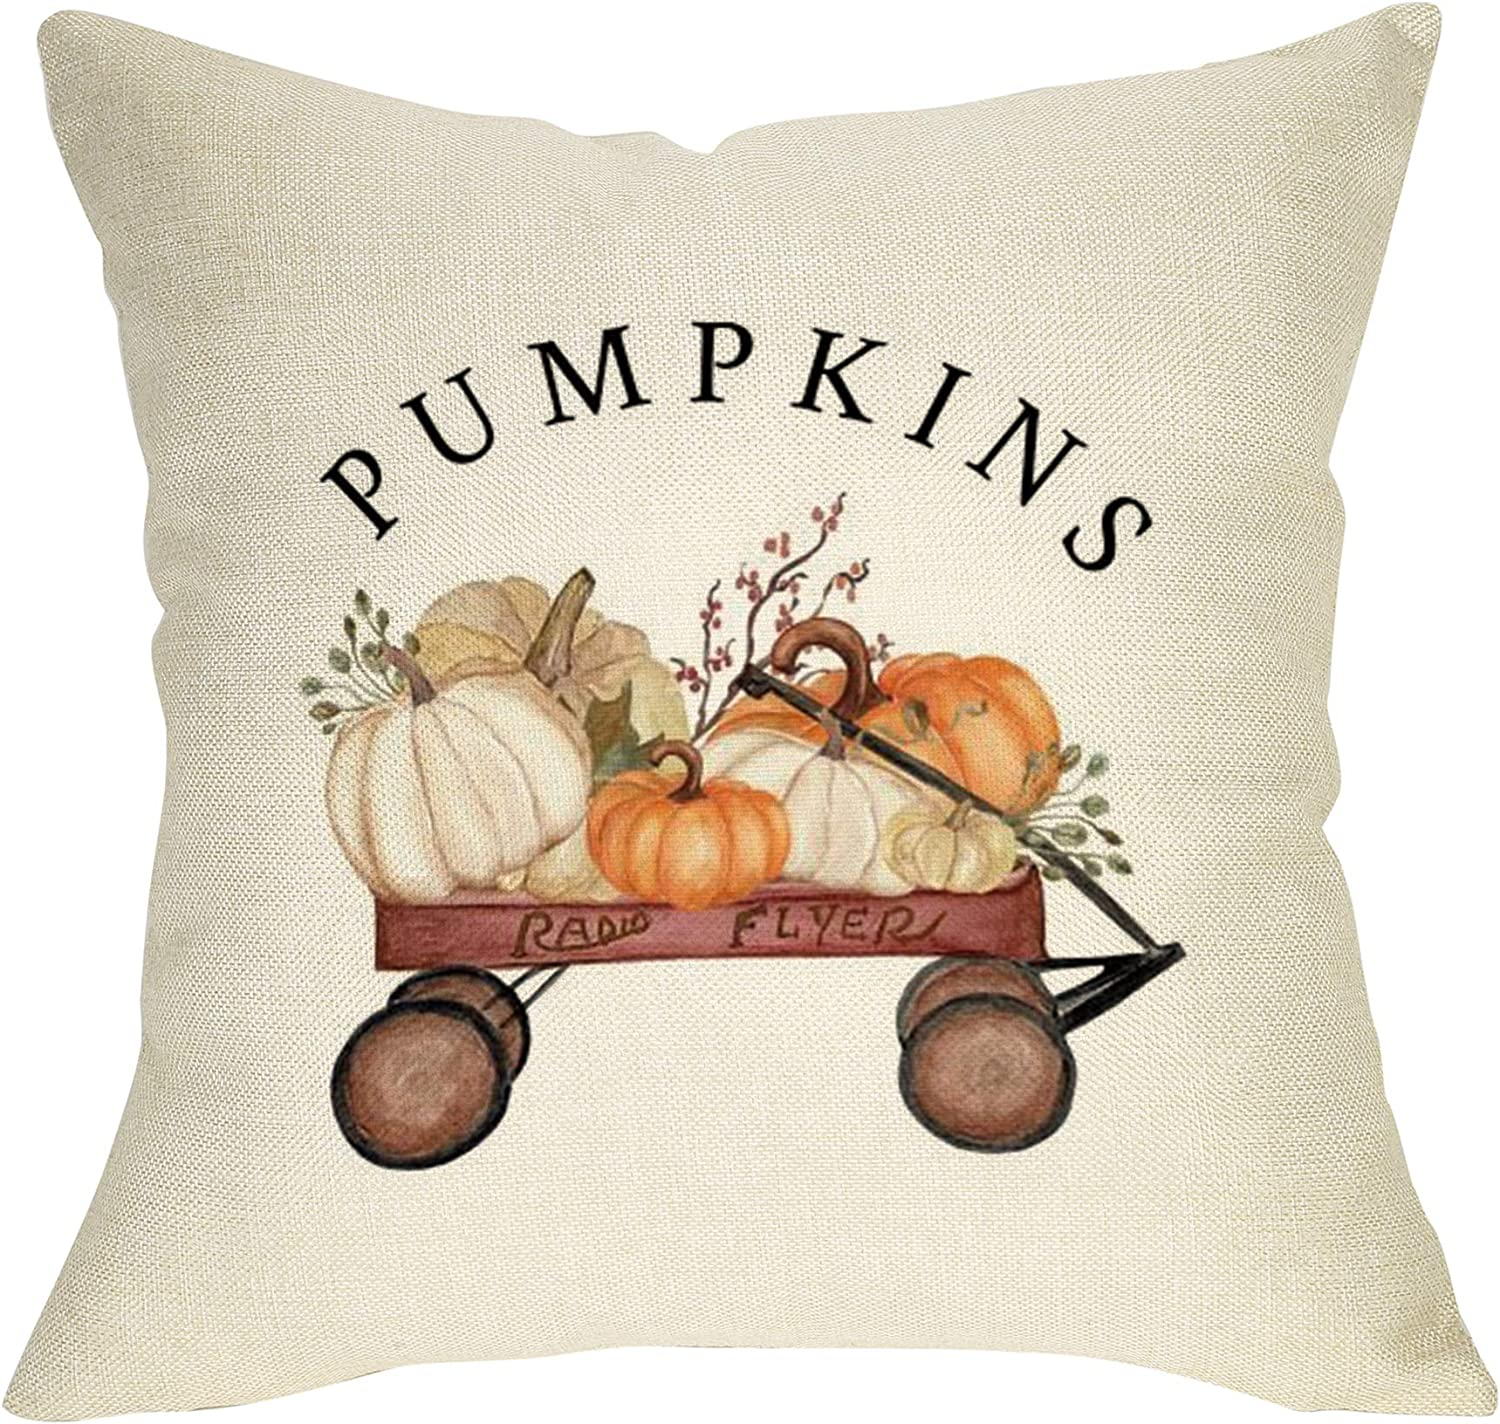 """Ussap Whimsical Pumpkins Fall Decoration Thanksgiving Day Farmhouse Decorative Throw Pillow Cover Cushion Case for Sofa Couch Vintage Red Wagon Autumn Harvest Sign Home Decor Cotton Linen 18"""" x 18"""" In"""